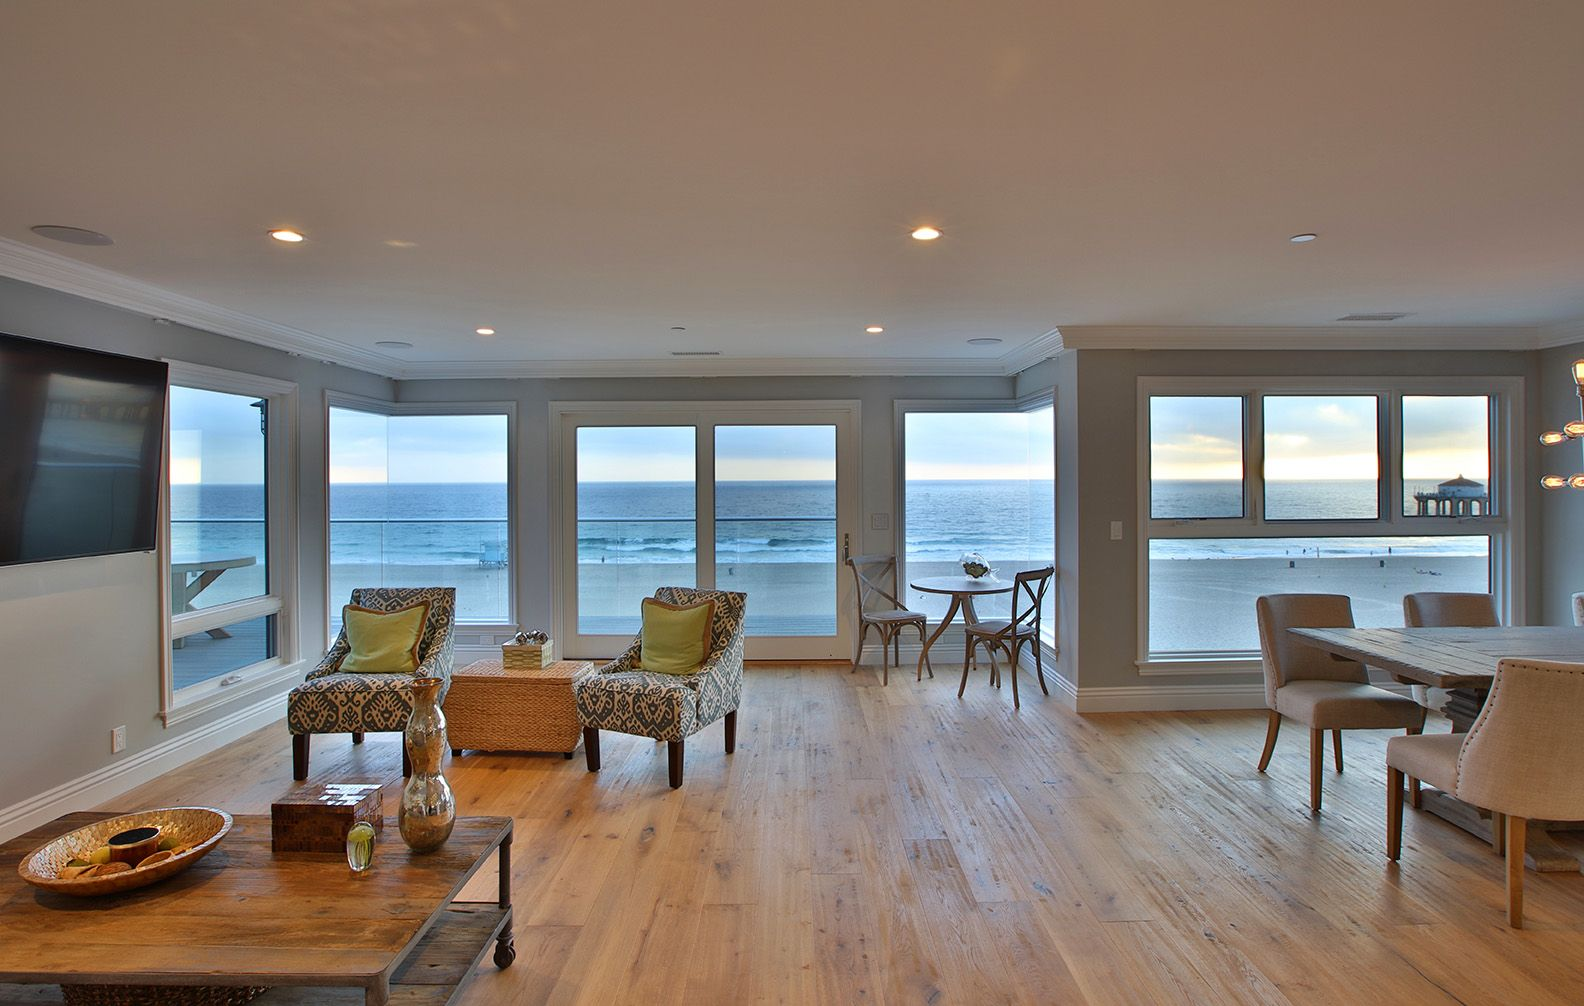 Open Concept Luxury Modern Home With Ocean View Luxury Modern Homes Open Concept Floor Plans Luxury Real Estate